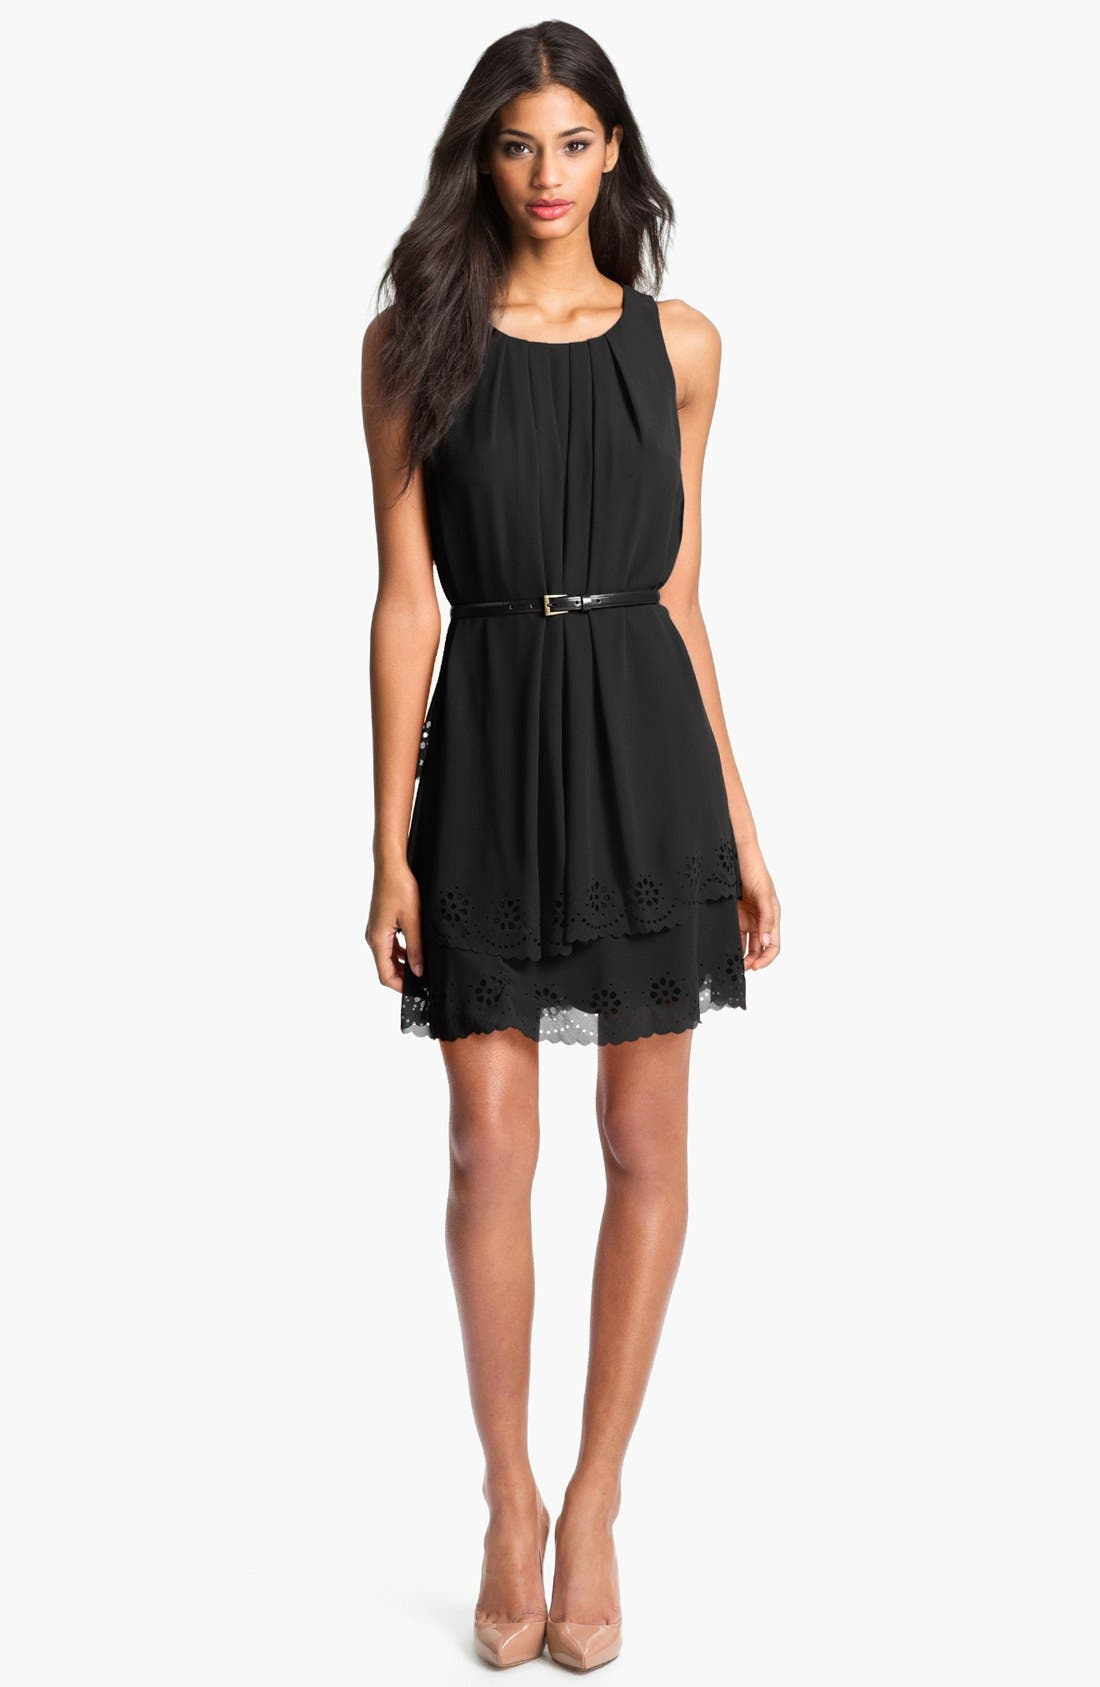 Alternate Image 1 Selected - Jessica Simpson Tiered Eyelet Crêpe de Chine Dress